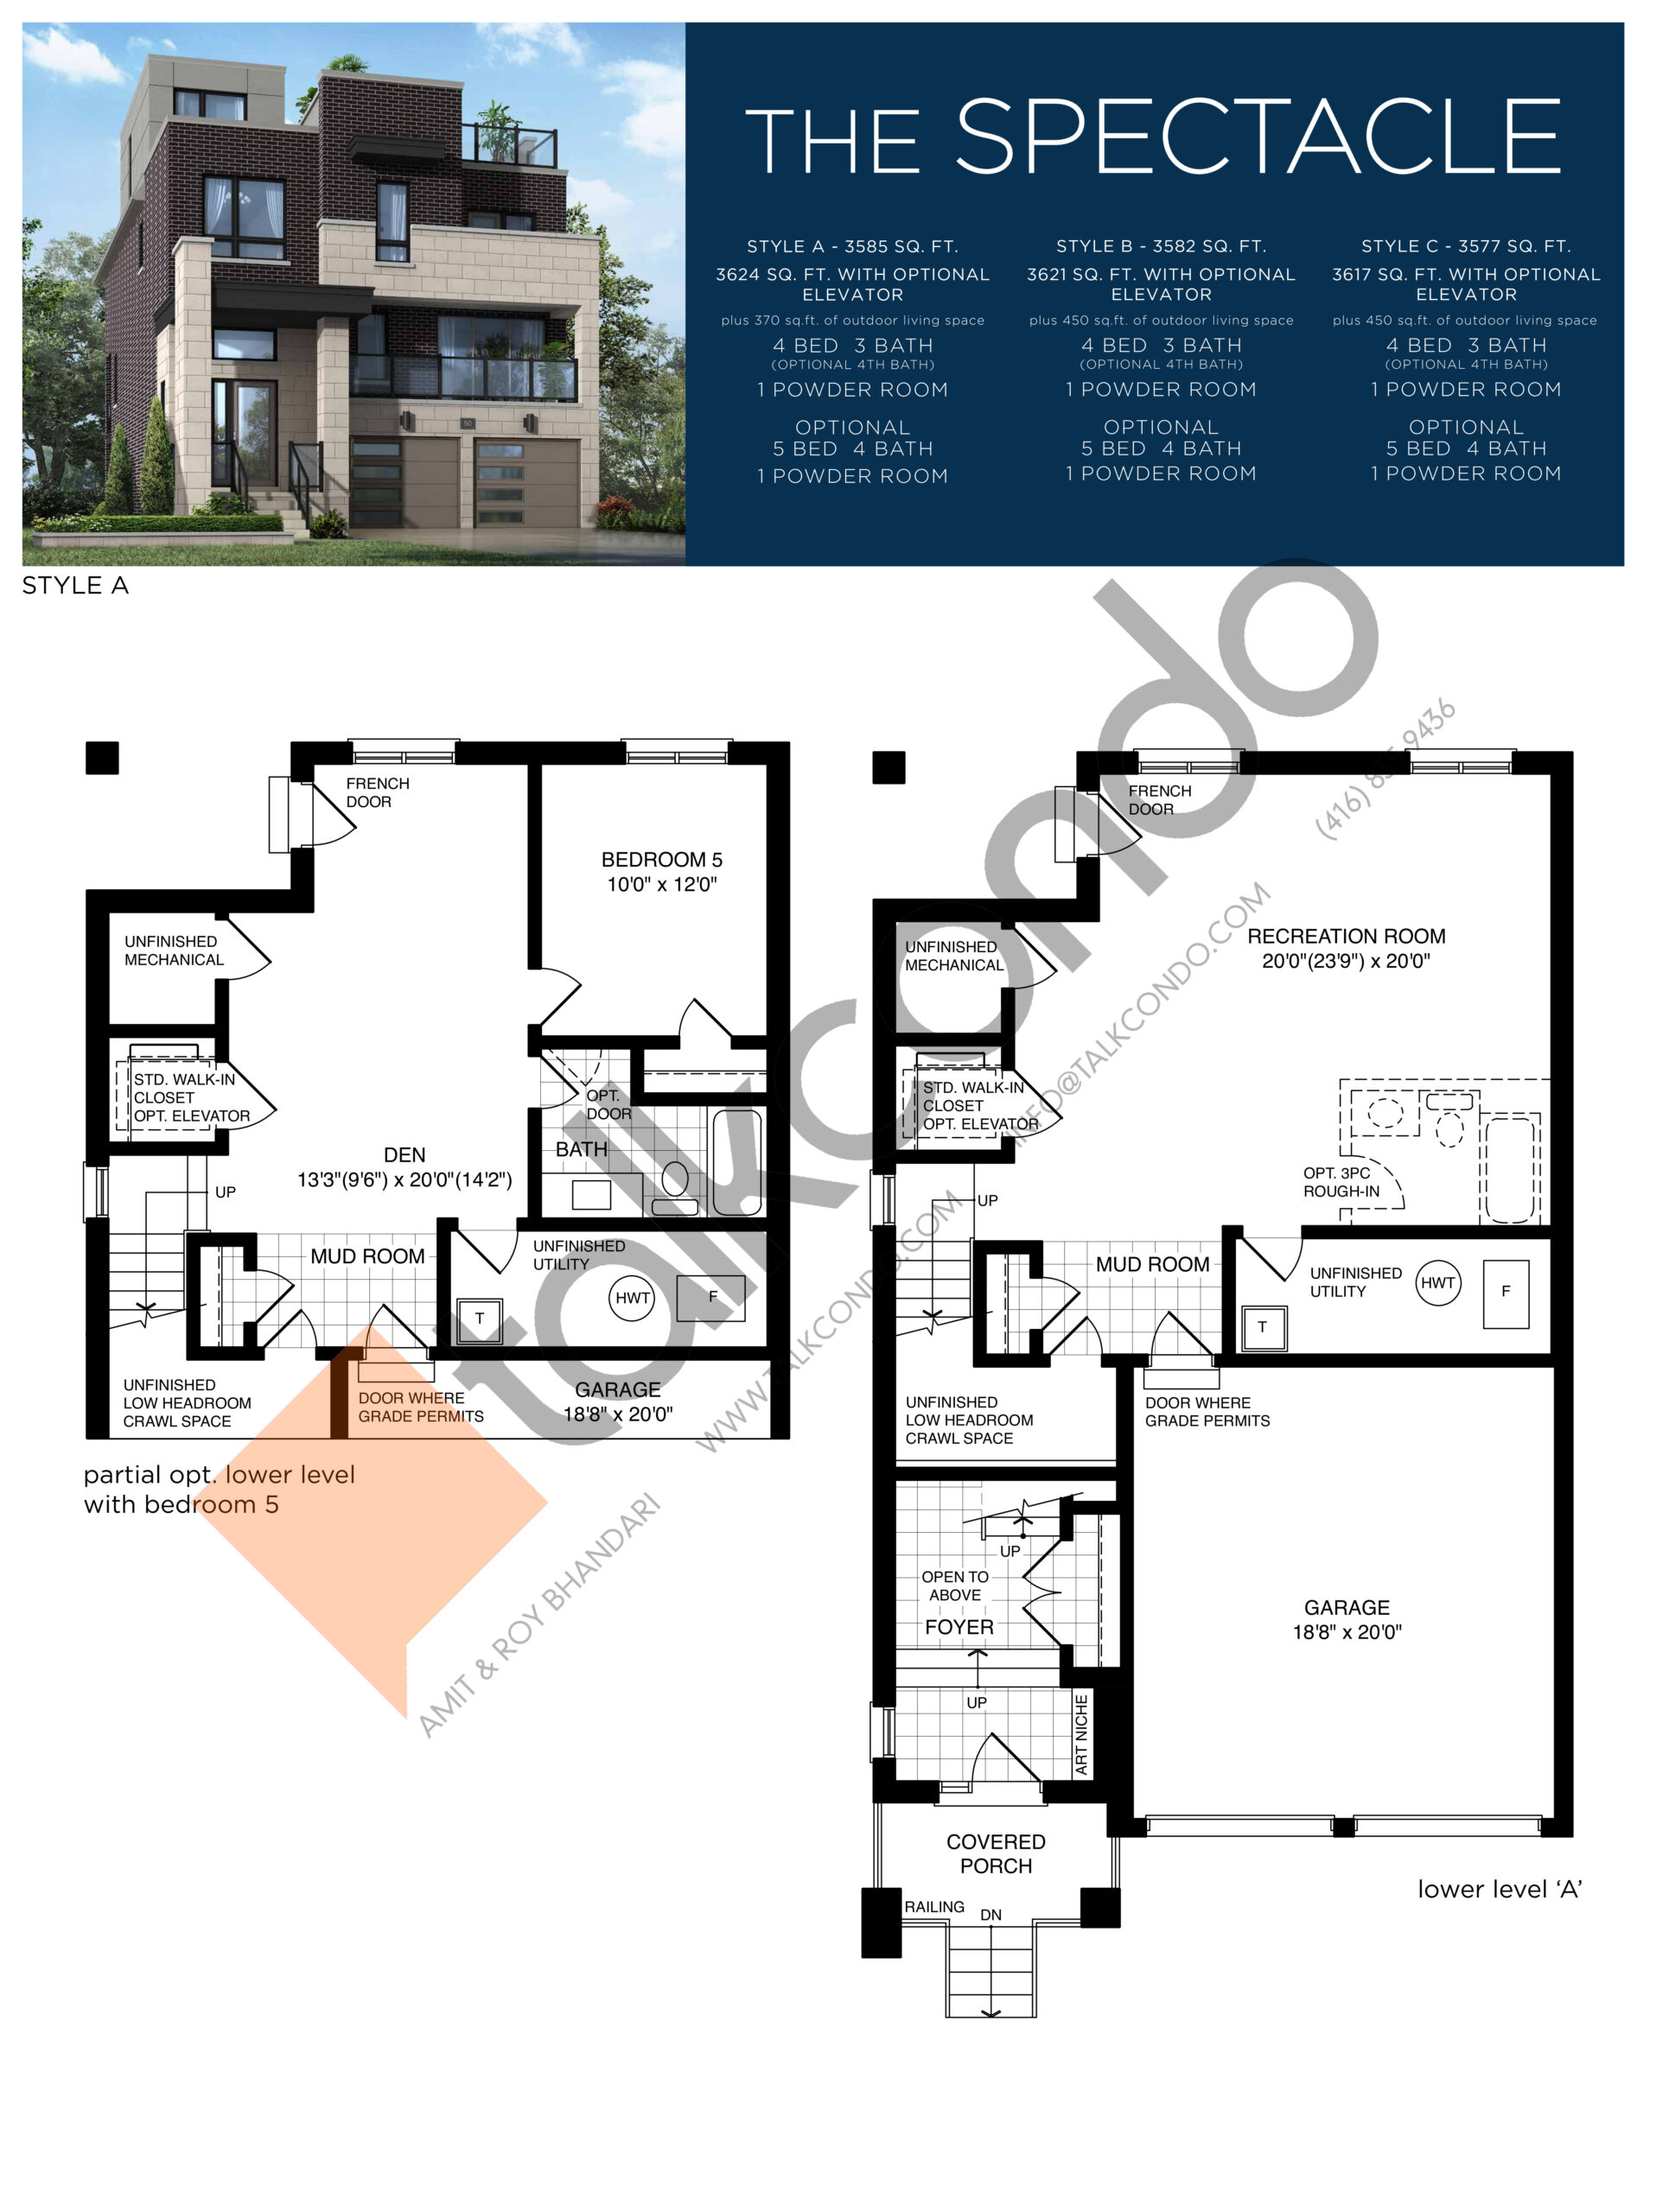 The Spectacle (1/3) Floor Plan at Lake Breeze - 3585 sq.ft